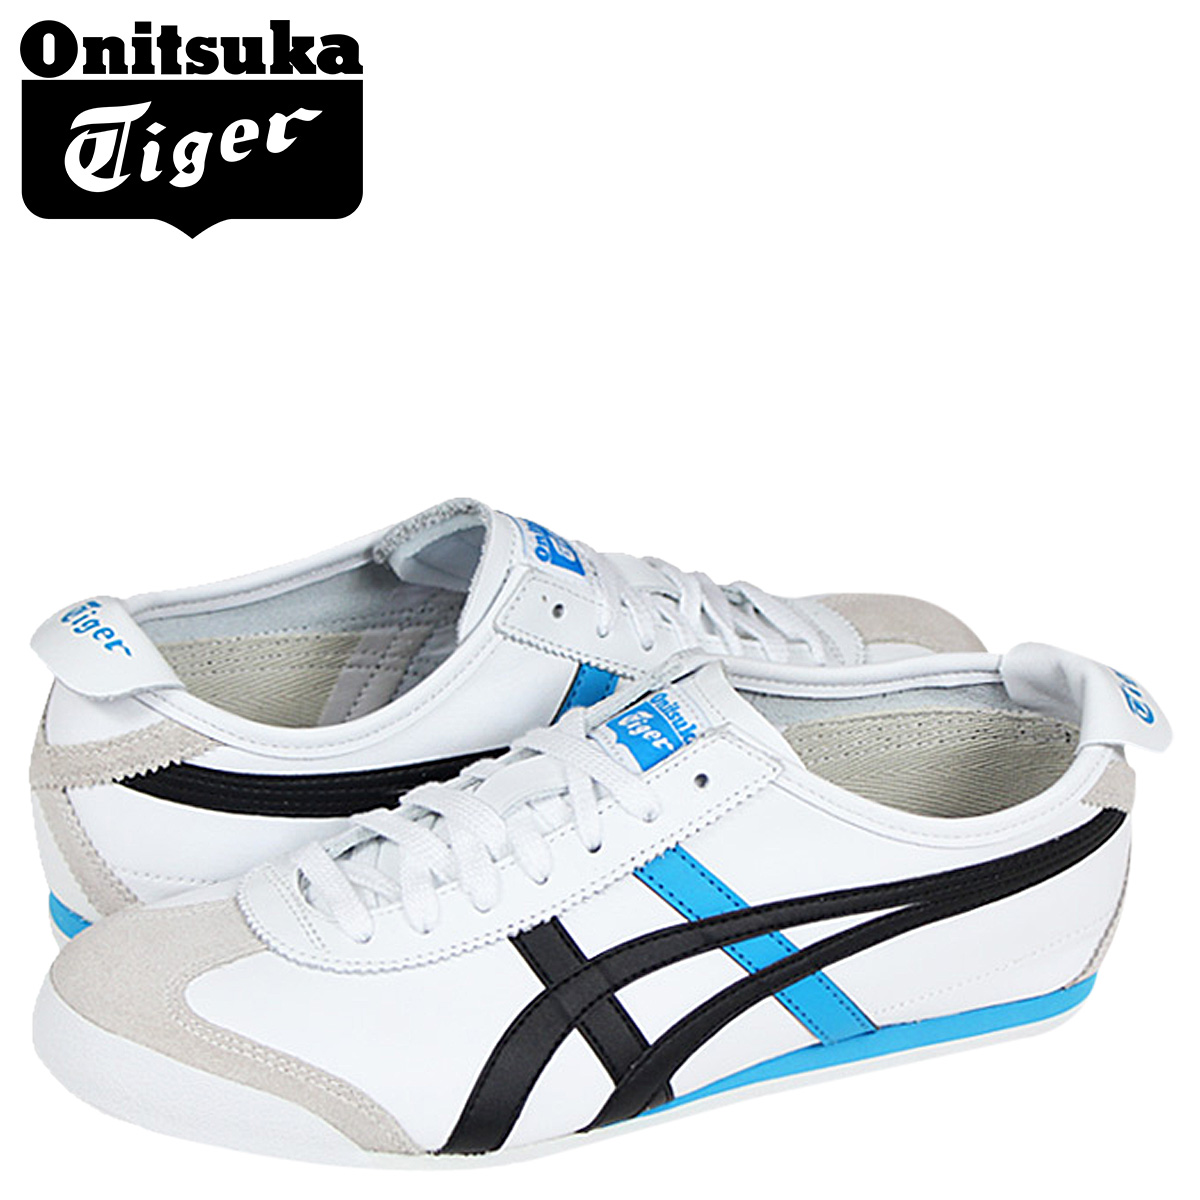 Point 2 x ASICs Onitsuka Tiger asics MEXICO 66 THL7C2-0152 sneakers ONITSUKA  Tiger Mexico 66 suede × leather mens suede white  1   31 new in stock  ... 1776d77d4364